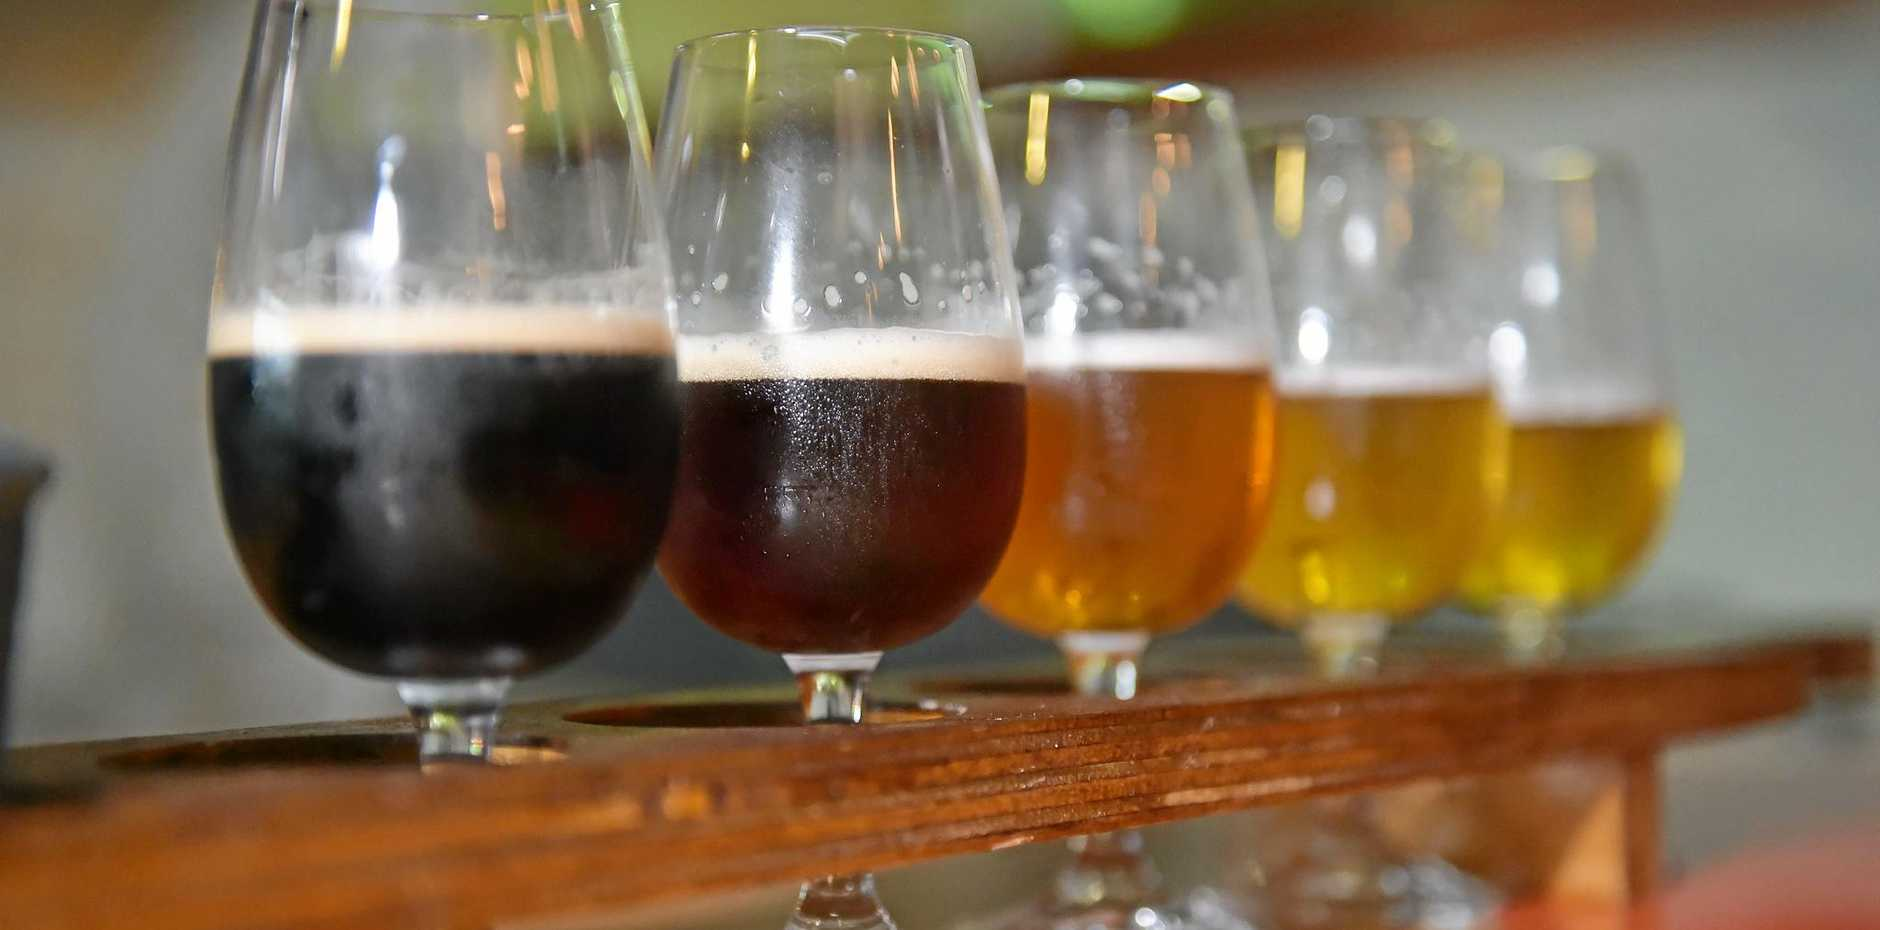 The Craft Beer and Cider Festival at the Kincumber Hotel promises over 100 varieties of the best craft beer and cider.